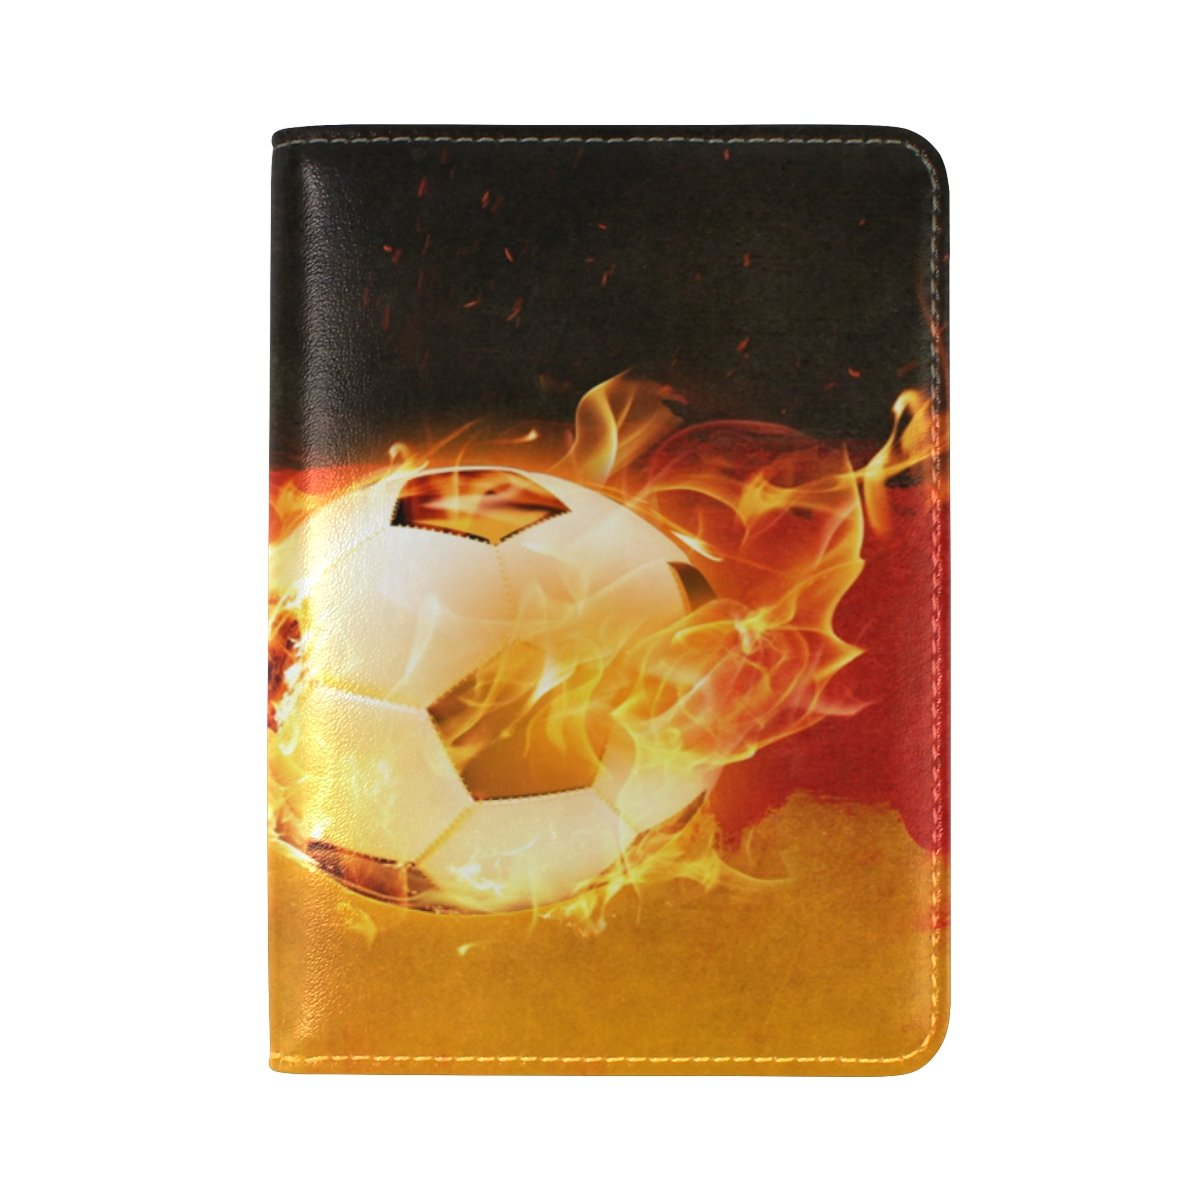 PU Leather Passport Holder Cover Case with Germany Flag Soccer With Fire Travel One Pocket